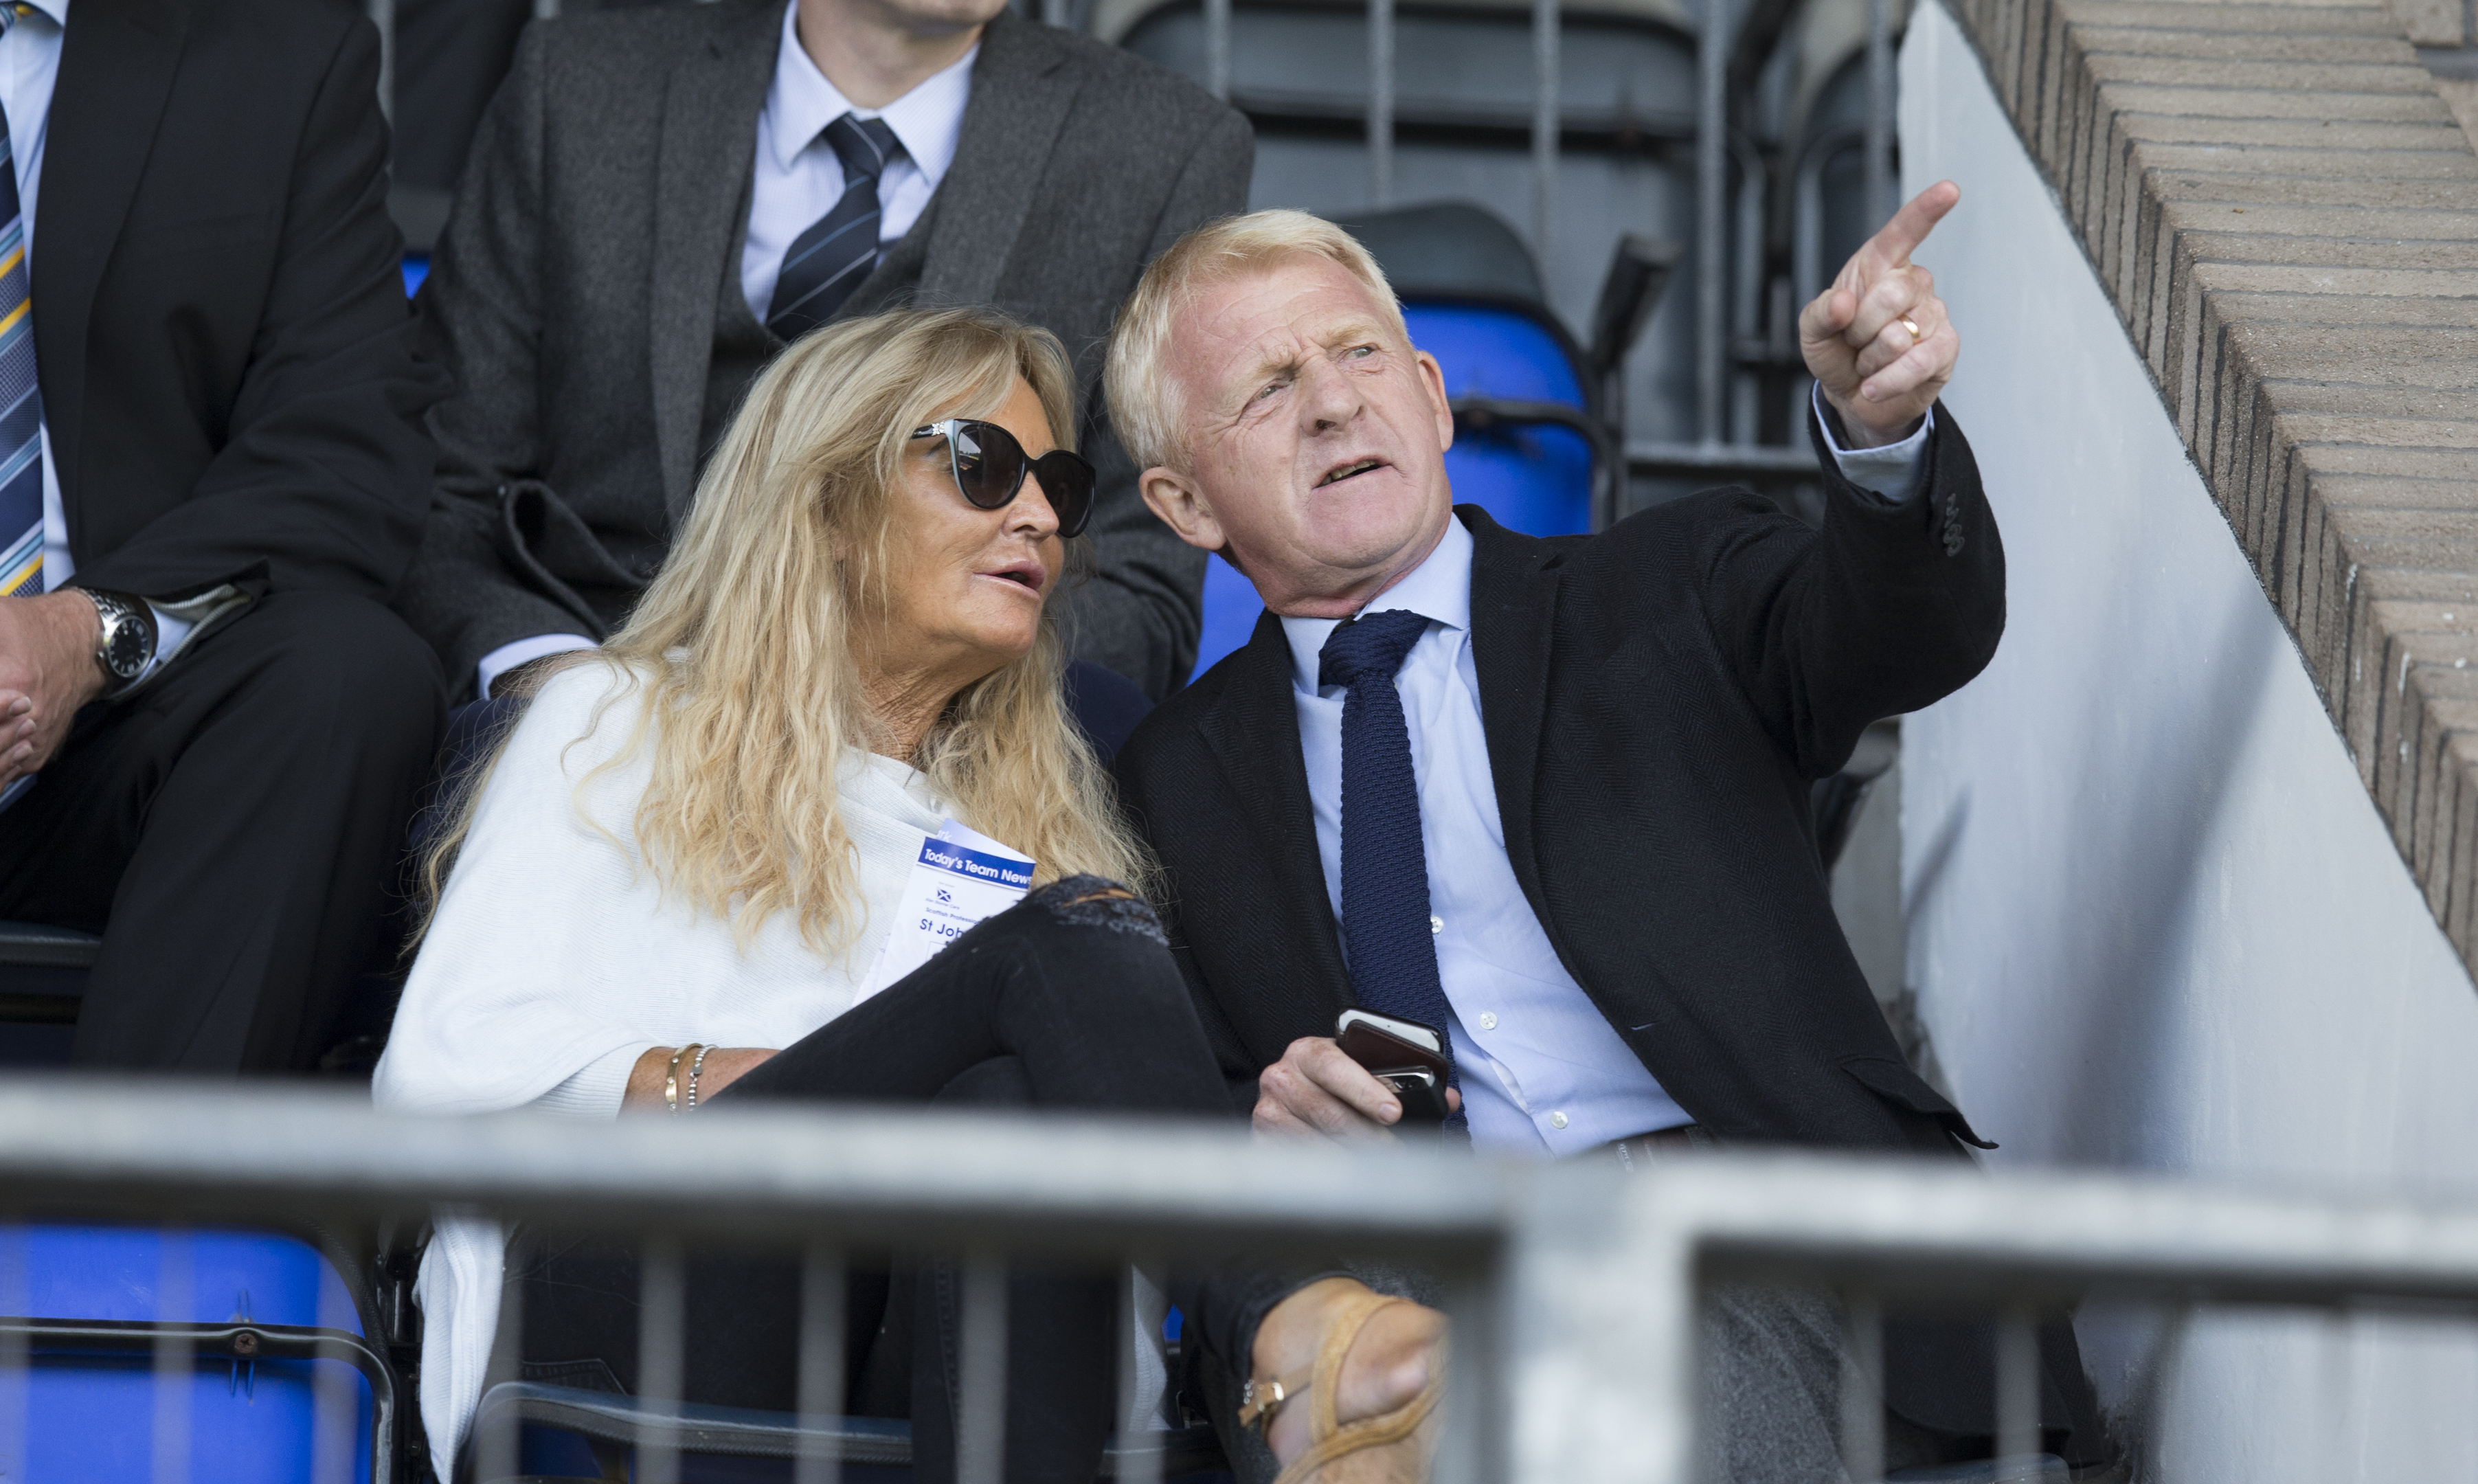 Gordon Strachan in the stands at McDiarmid Park